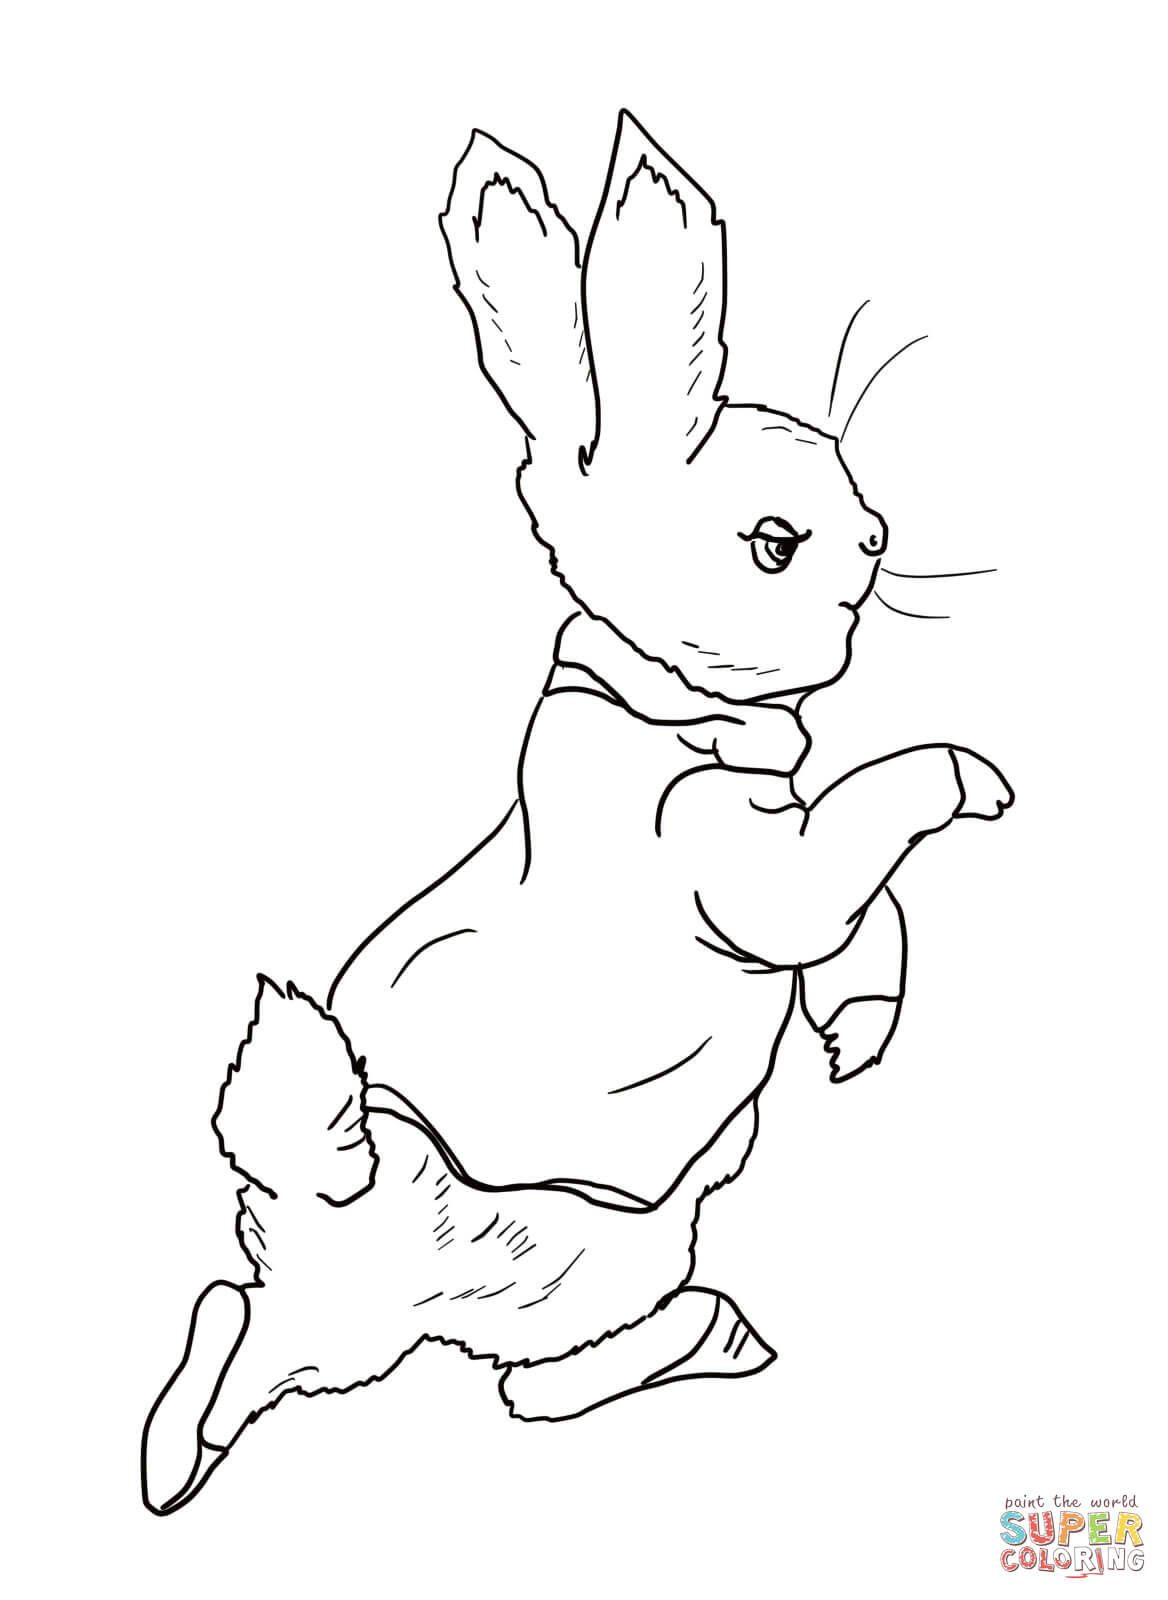 Peter Rabbit Is Going Into The Garden Coloring Page From Peter Rabbit Category Select From 2 Bunny Coloring Pages Easter Bunny Colouring Animal Coloring Pages